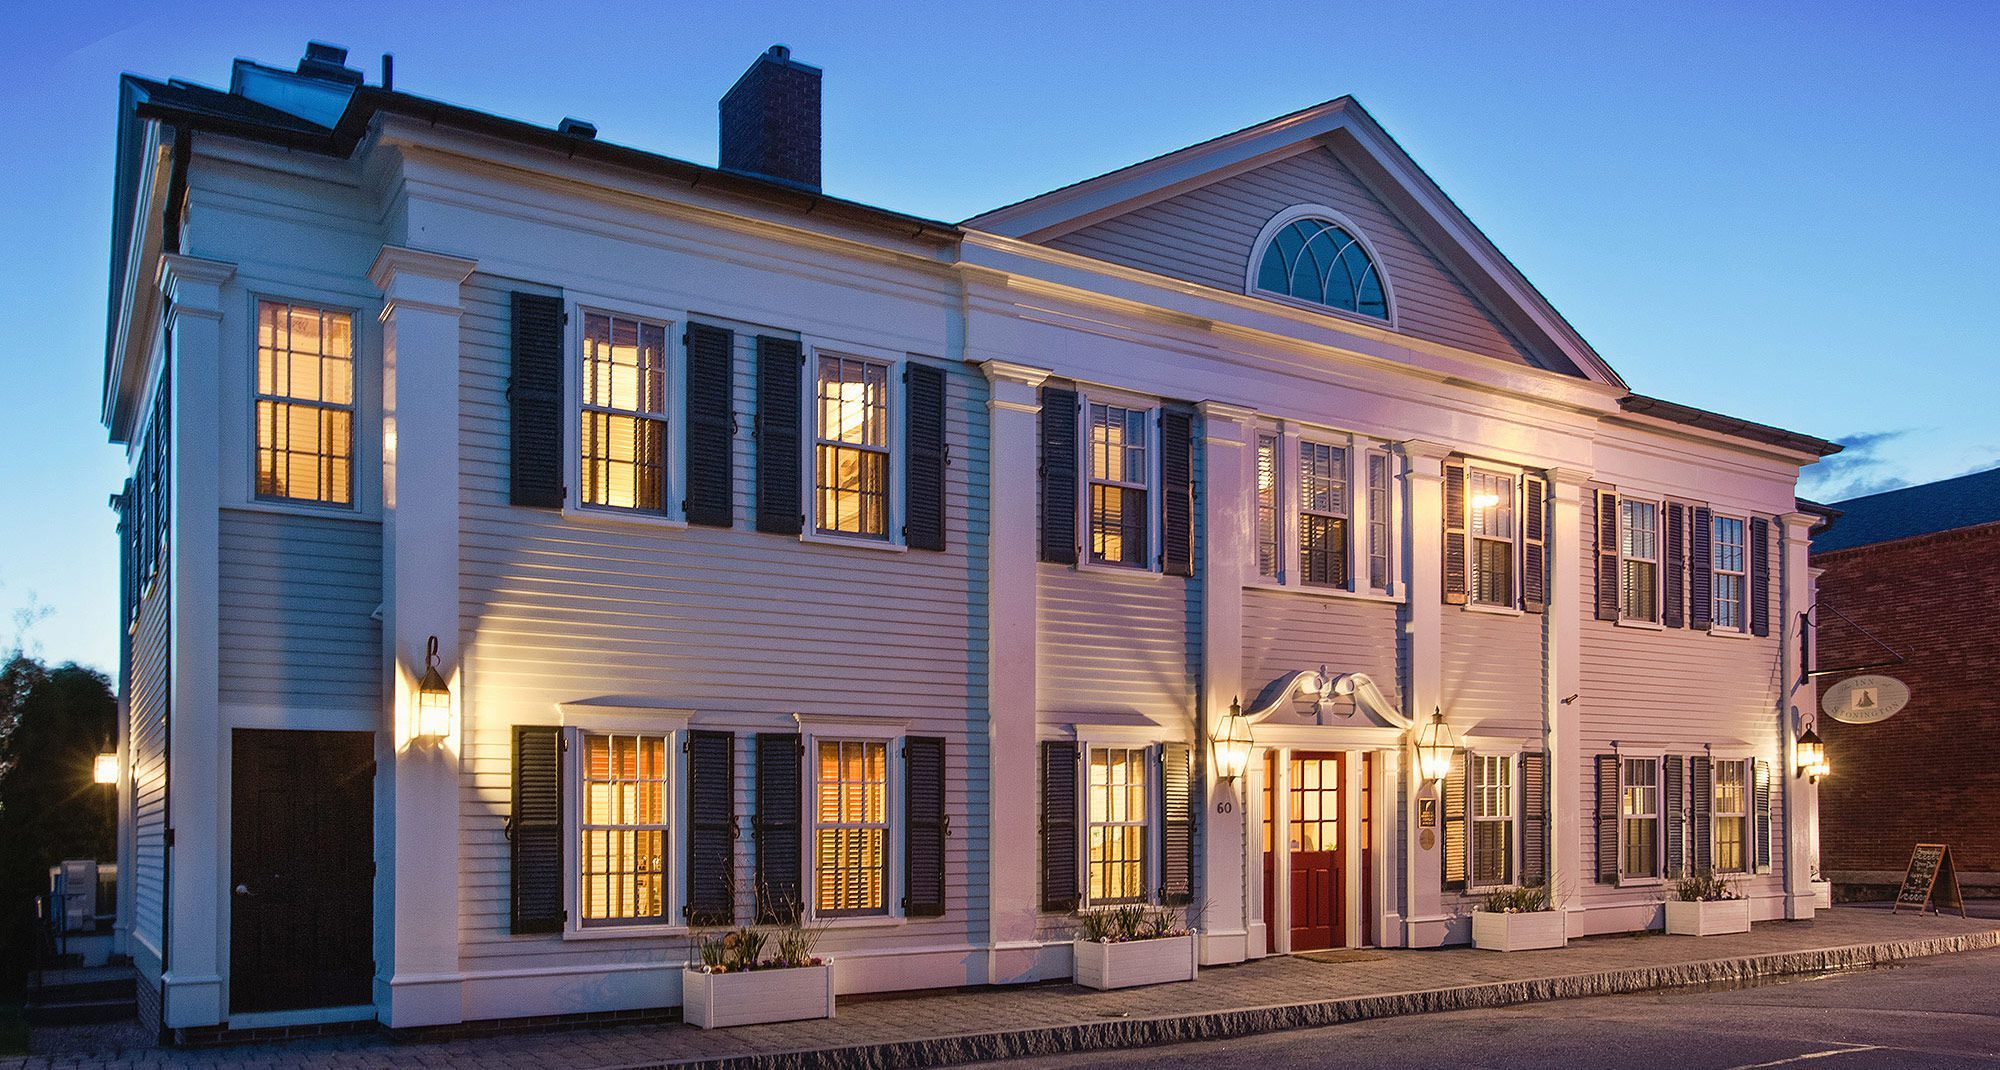 10 New England Inns With Fireplaces In Every Room In 2019